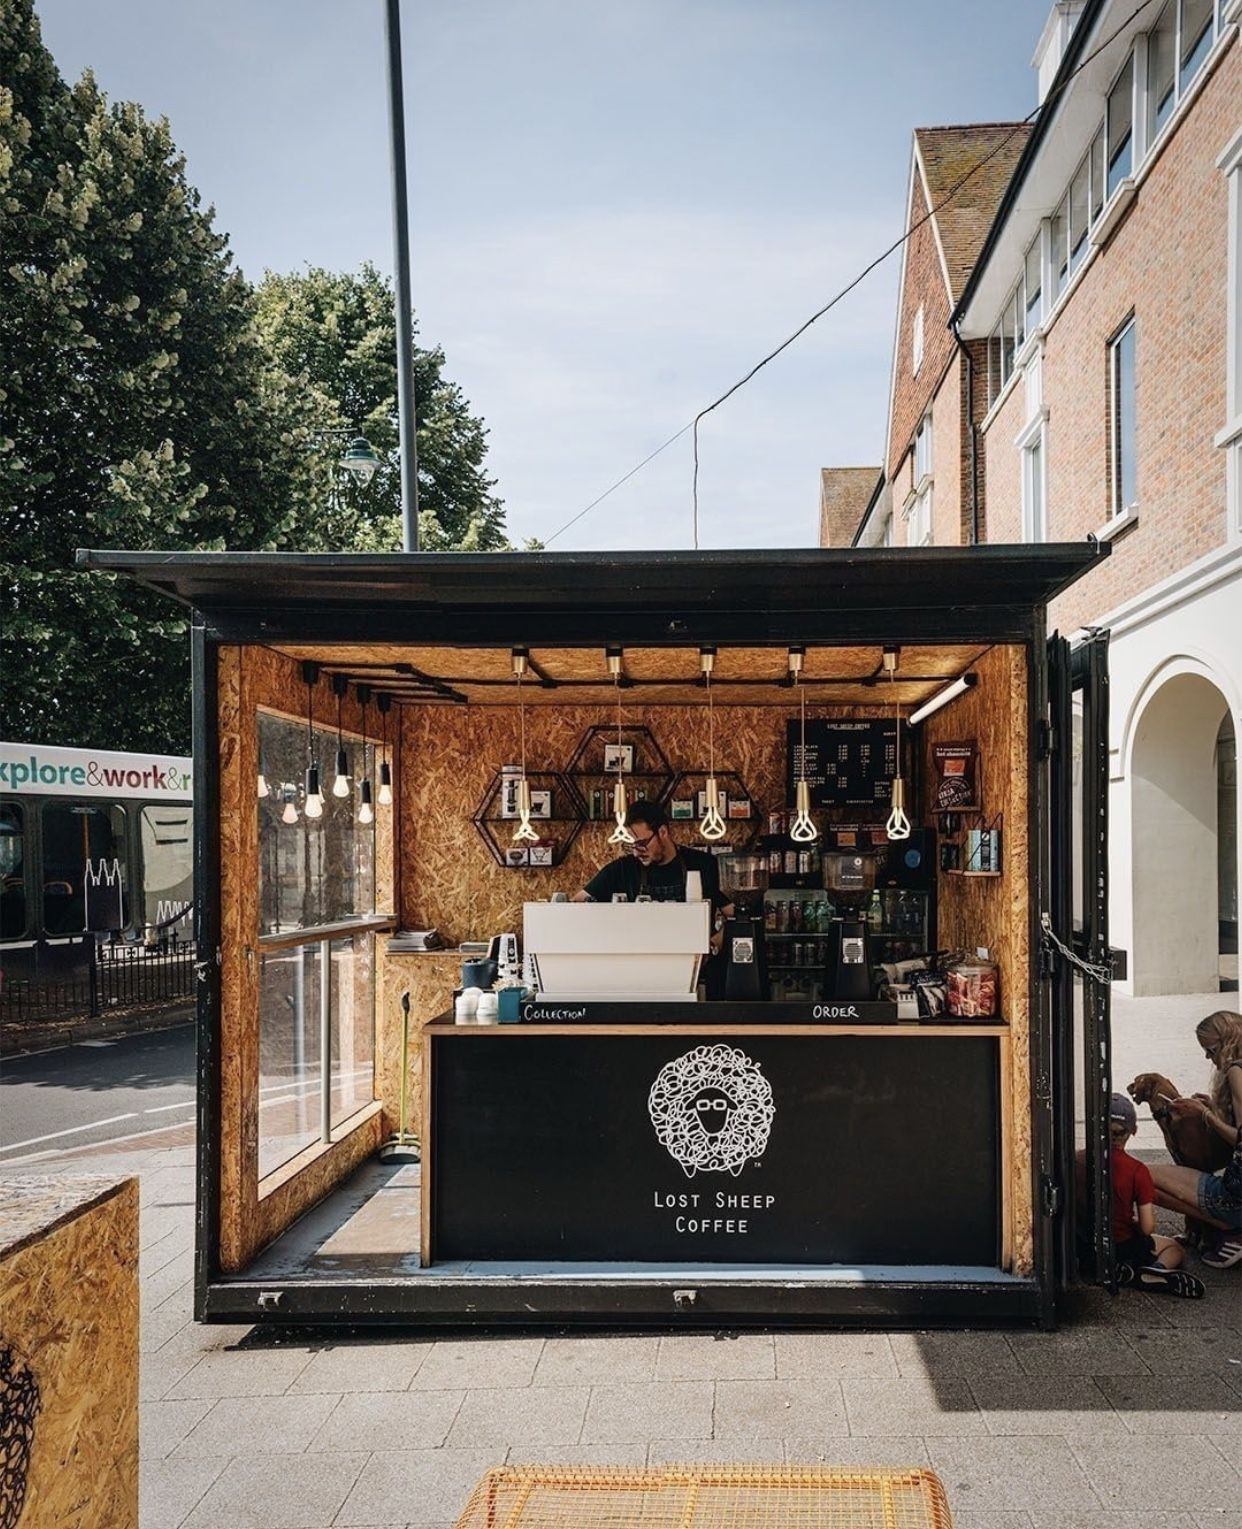 Pin by Andy Williamson on Container barber shop in 2020